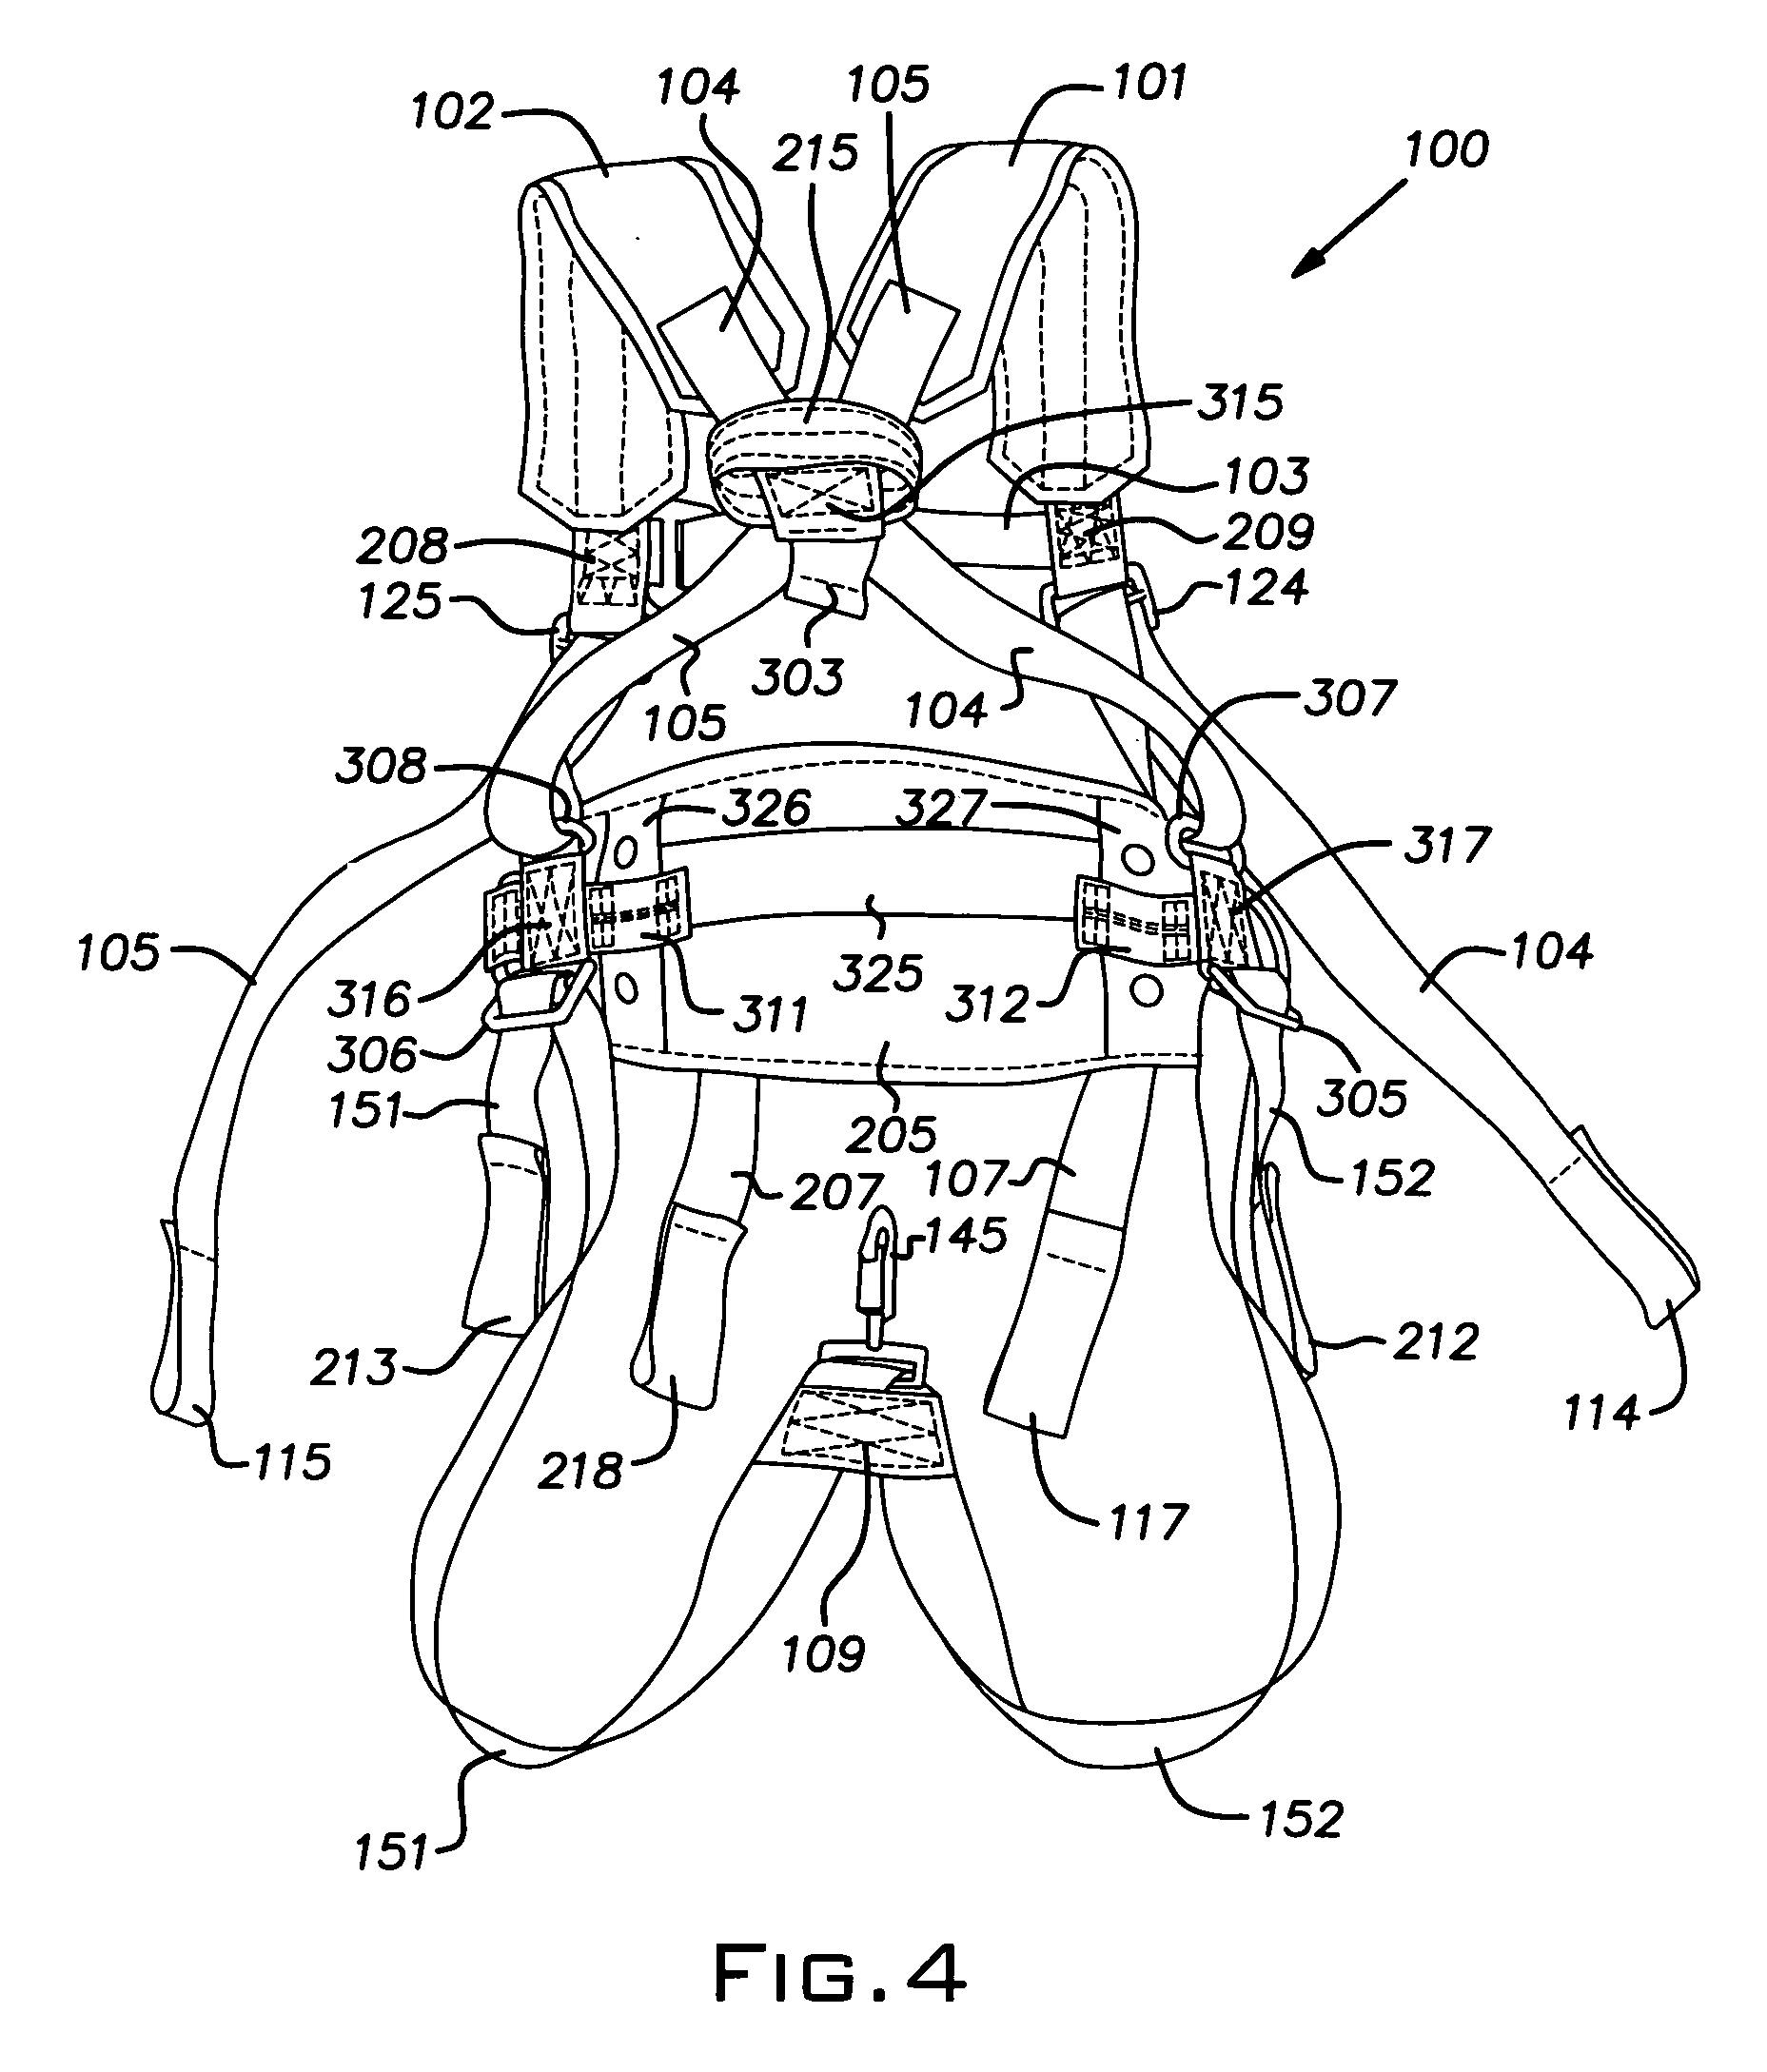 Firefighter Full Body Harness